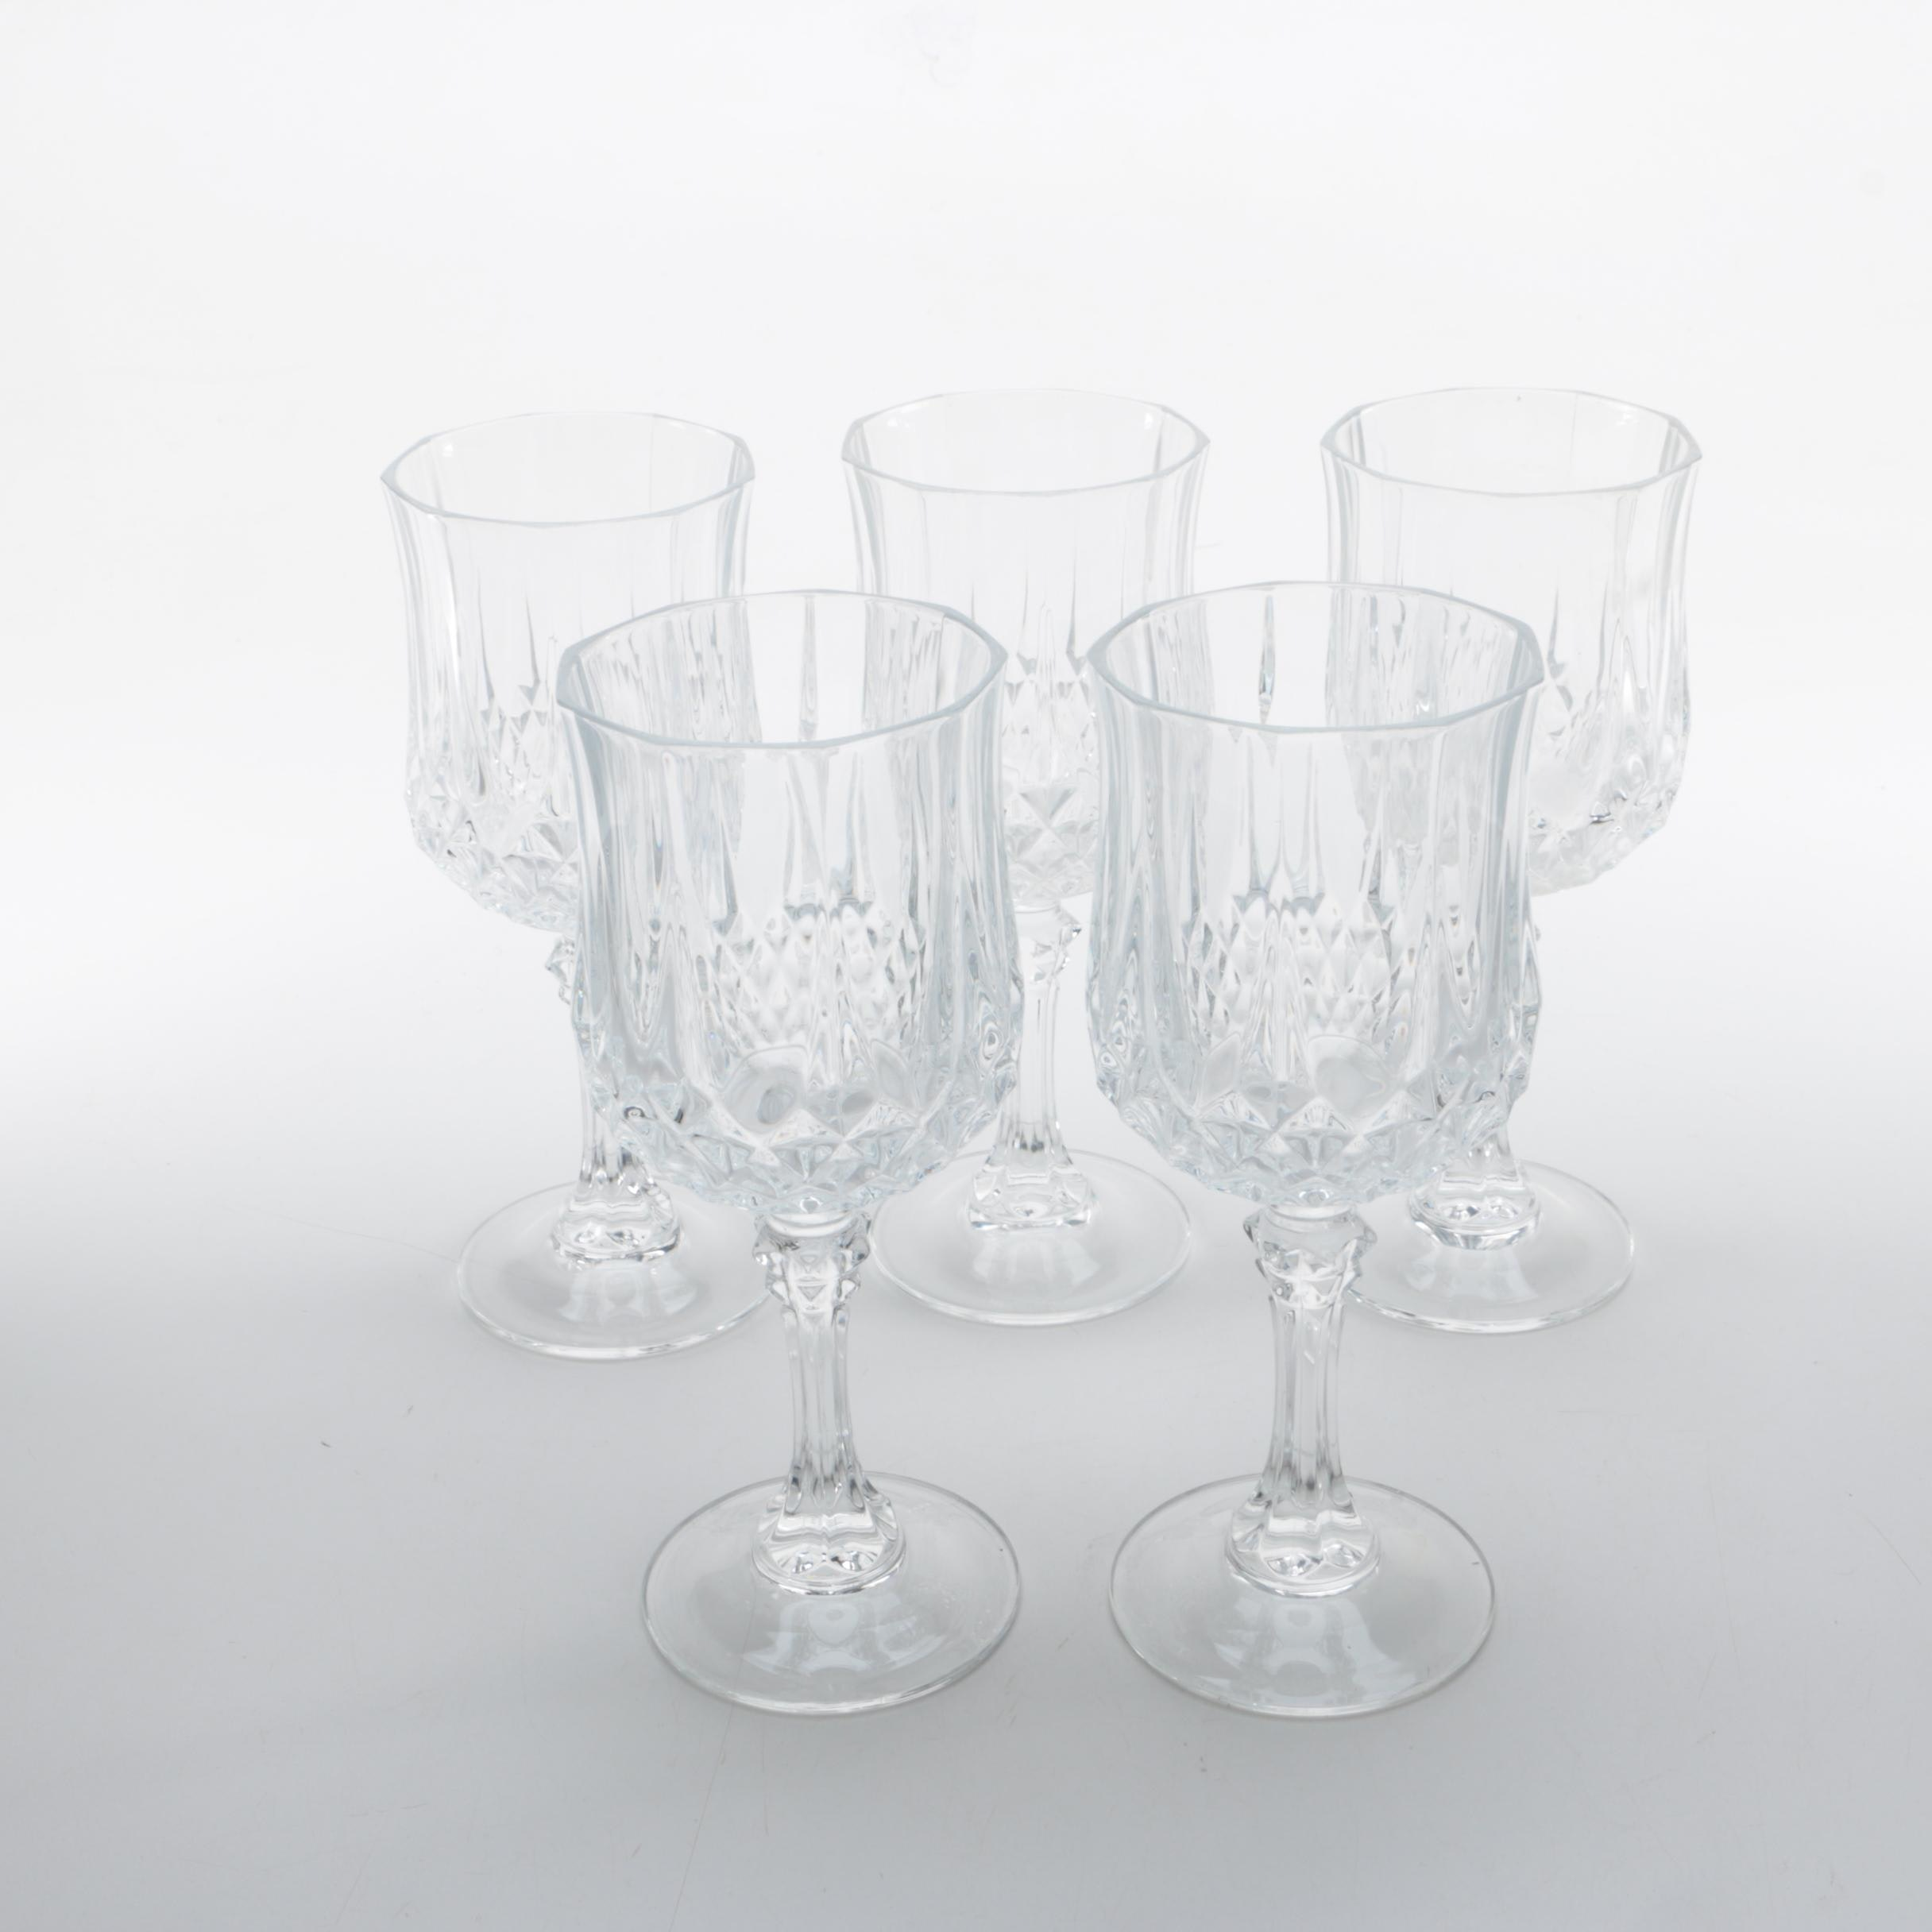 Glass Stemware Wine Glasses